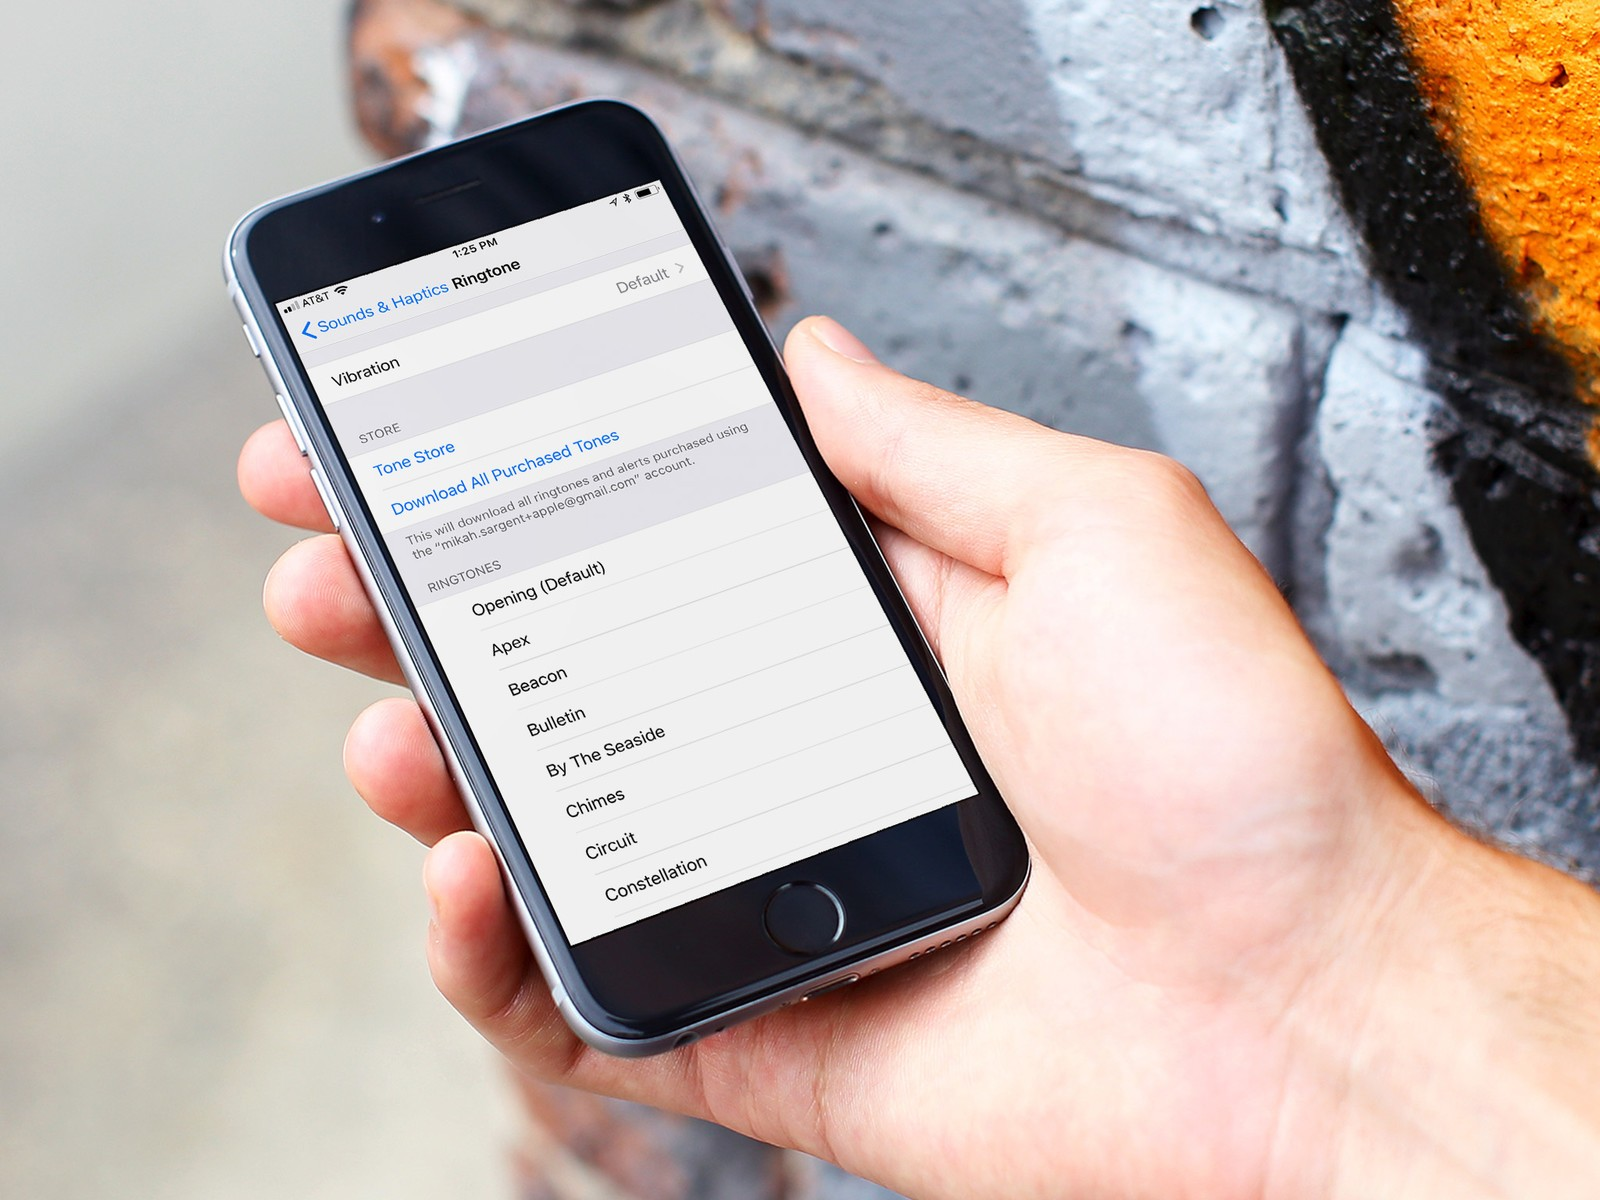 An iPhone is shown with the Sounds & Haptics settings on screen.